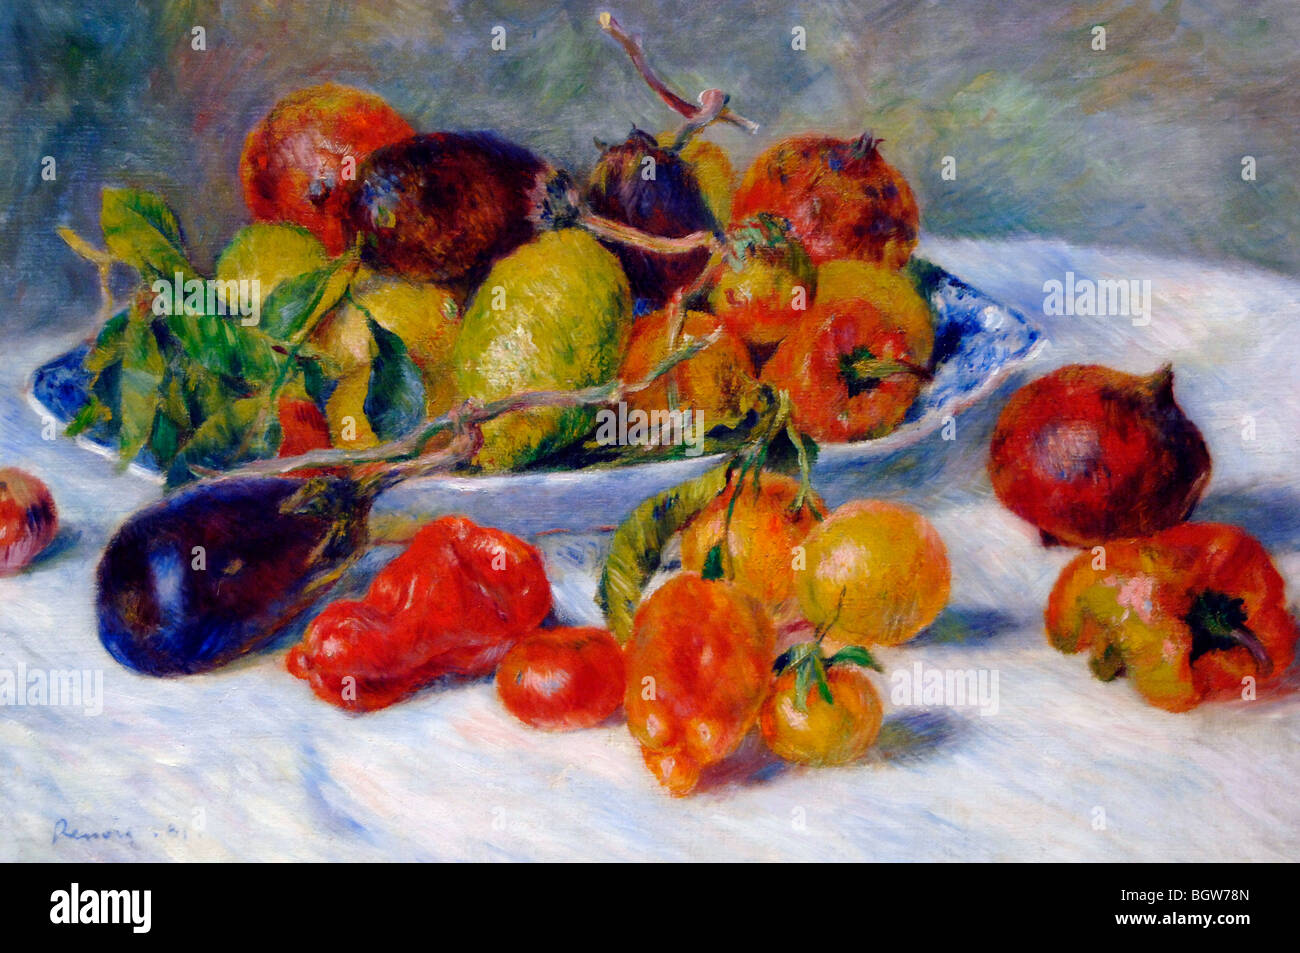 Pierre-Auguste Renoir Fruits of the Midi 1881 - Stock Image